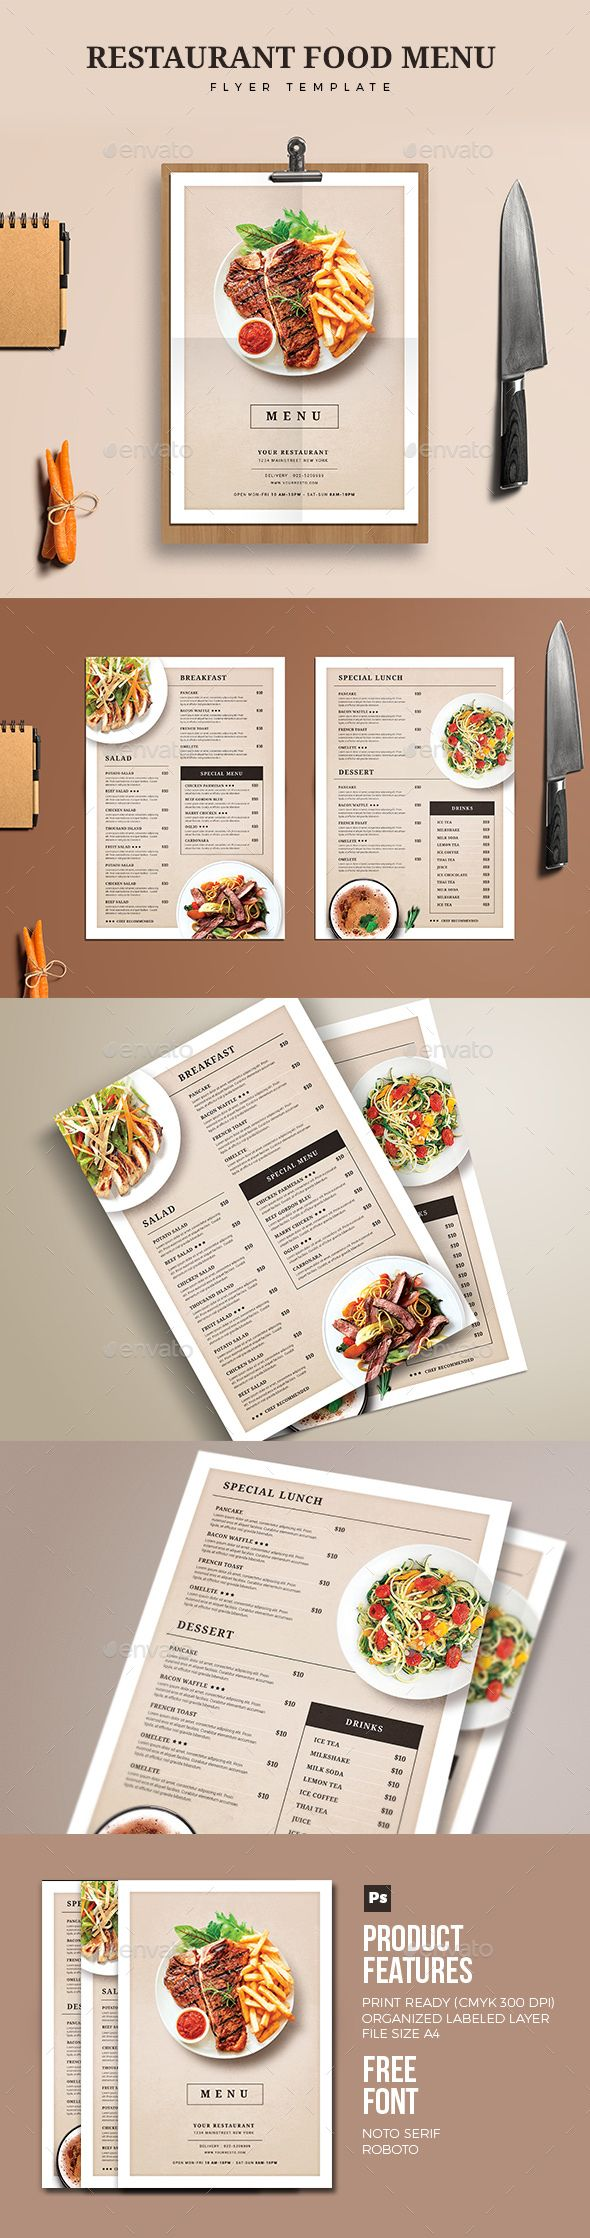 7 best menu design images on Pinterest | Menu layout, Menu design ...